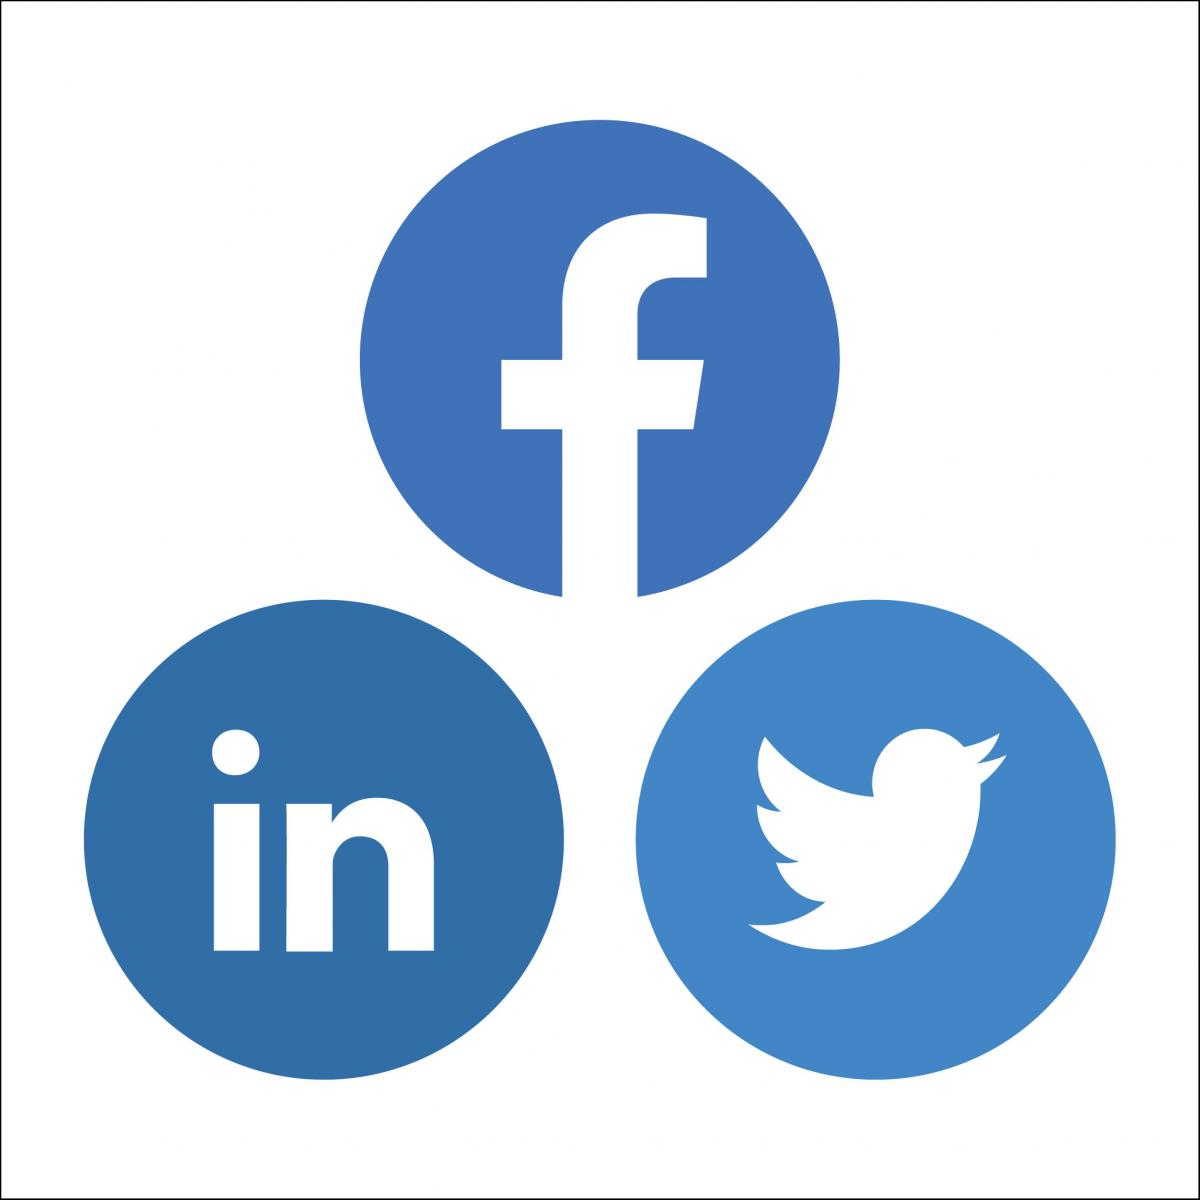 circular icons for Twitter, Facebook, and LinkedIn arranged to form a triangle